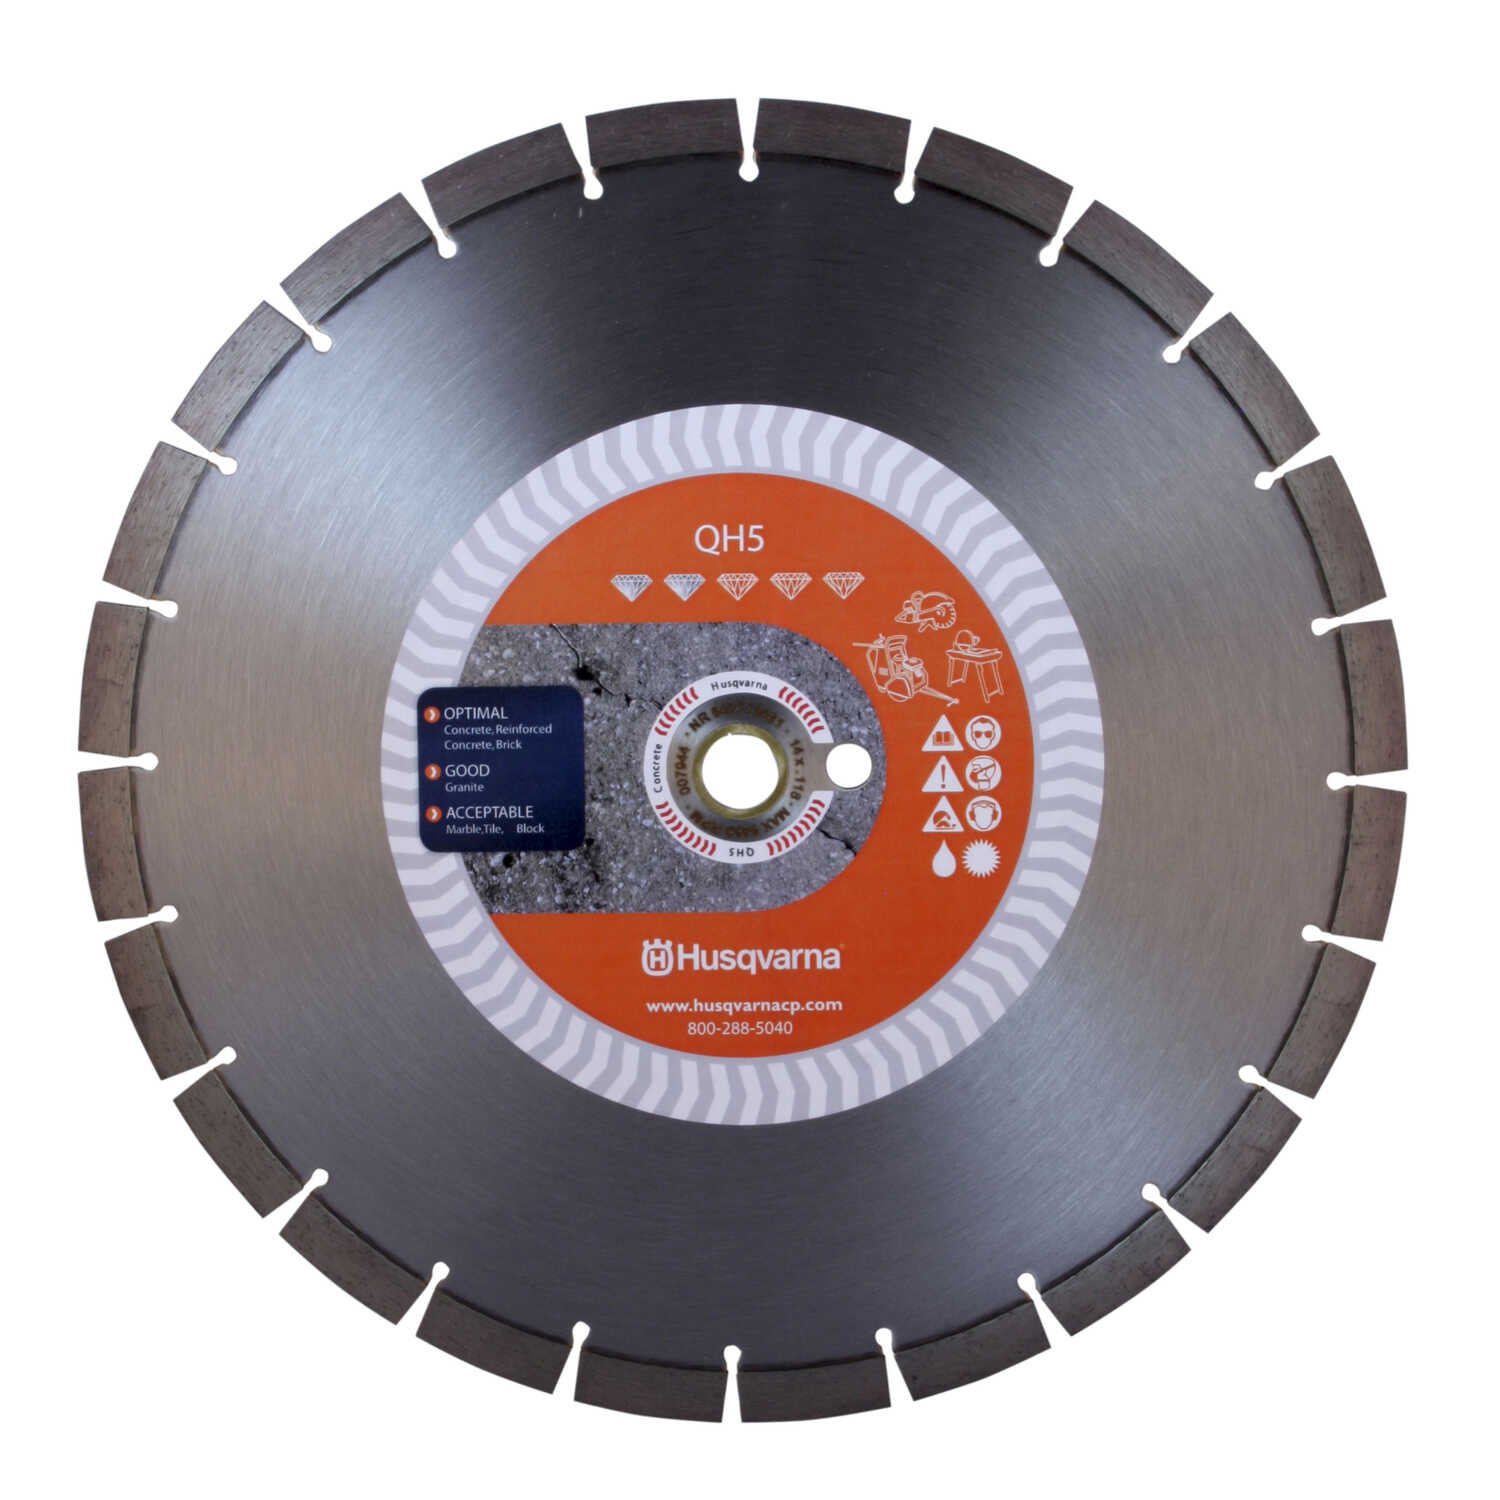 Husqvarna  12  Diamond  0.118 in. thick  24 teeth 1 pk QH5  Segmented Rim Diamond Saw Blade  1 in./2